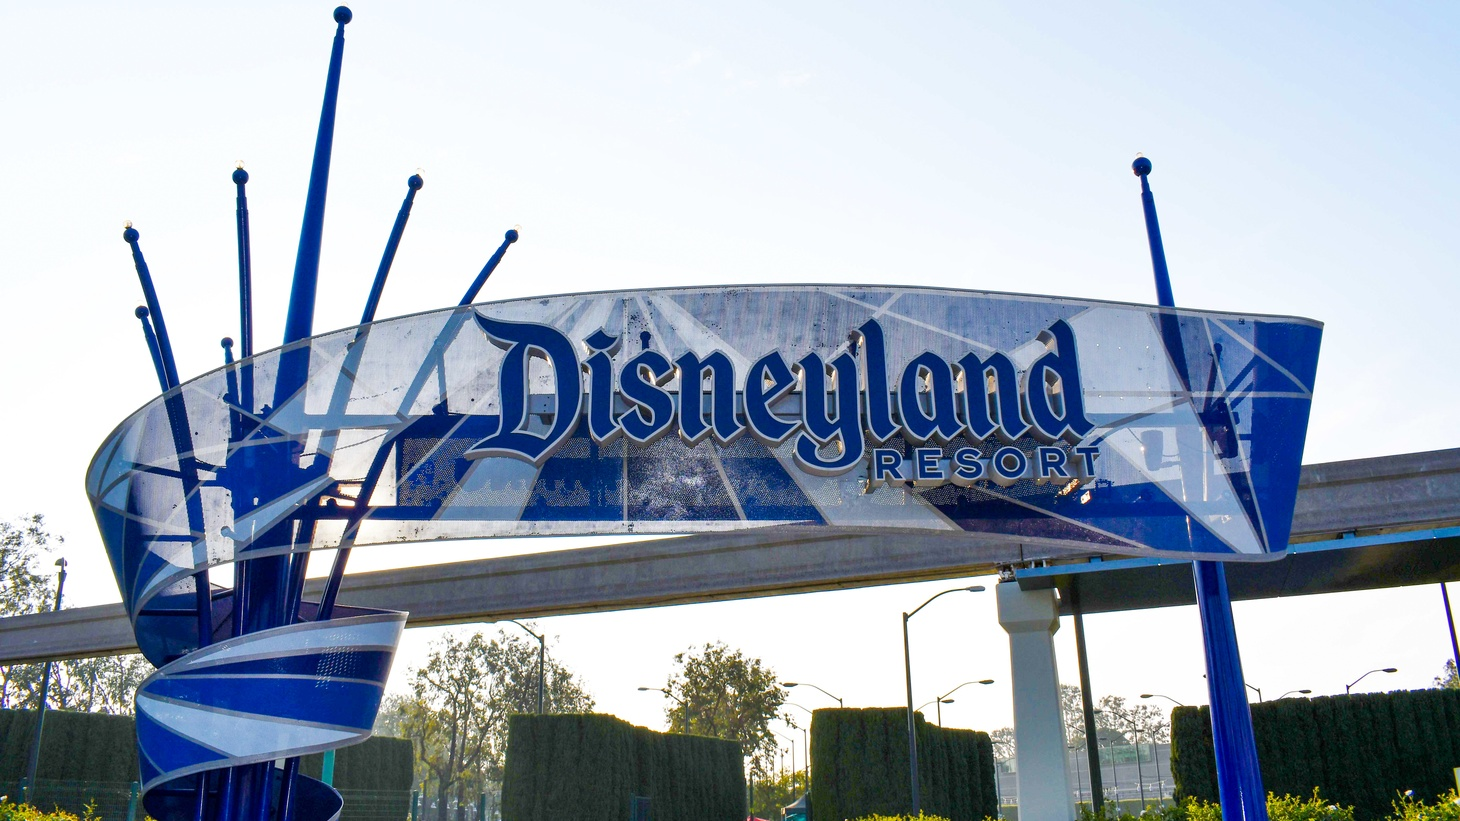 Disneyland is still closed for the foreseeable future.